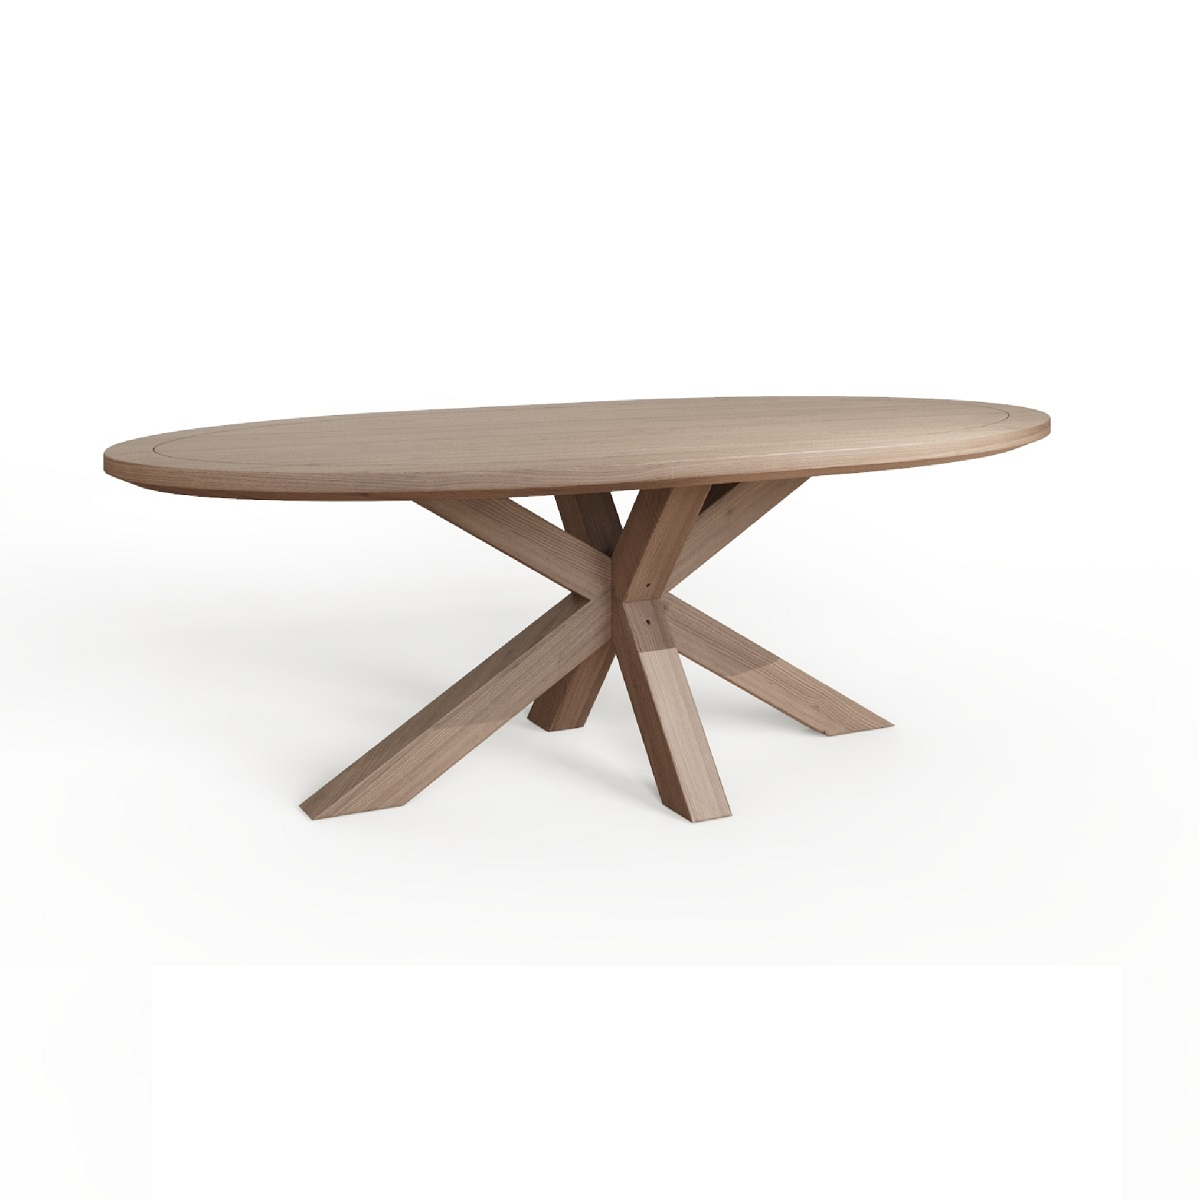 Jacob 2400 Large Oval Table